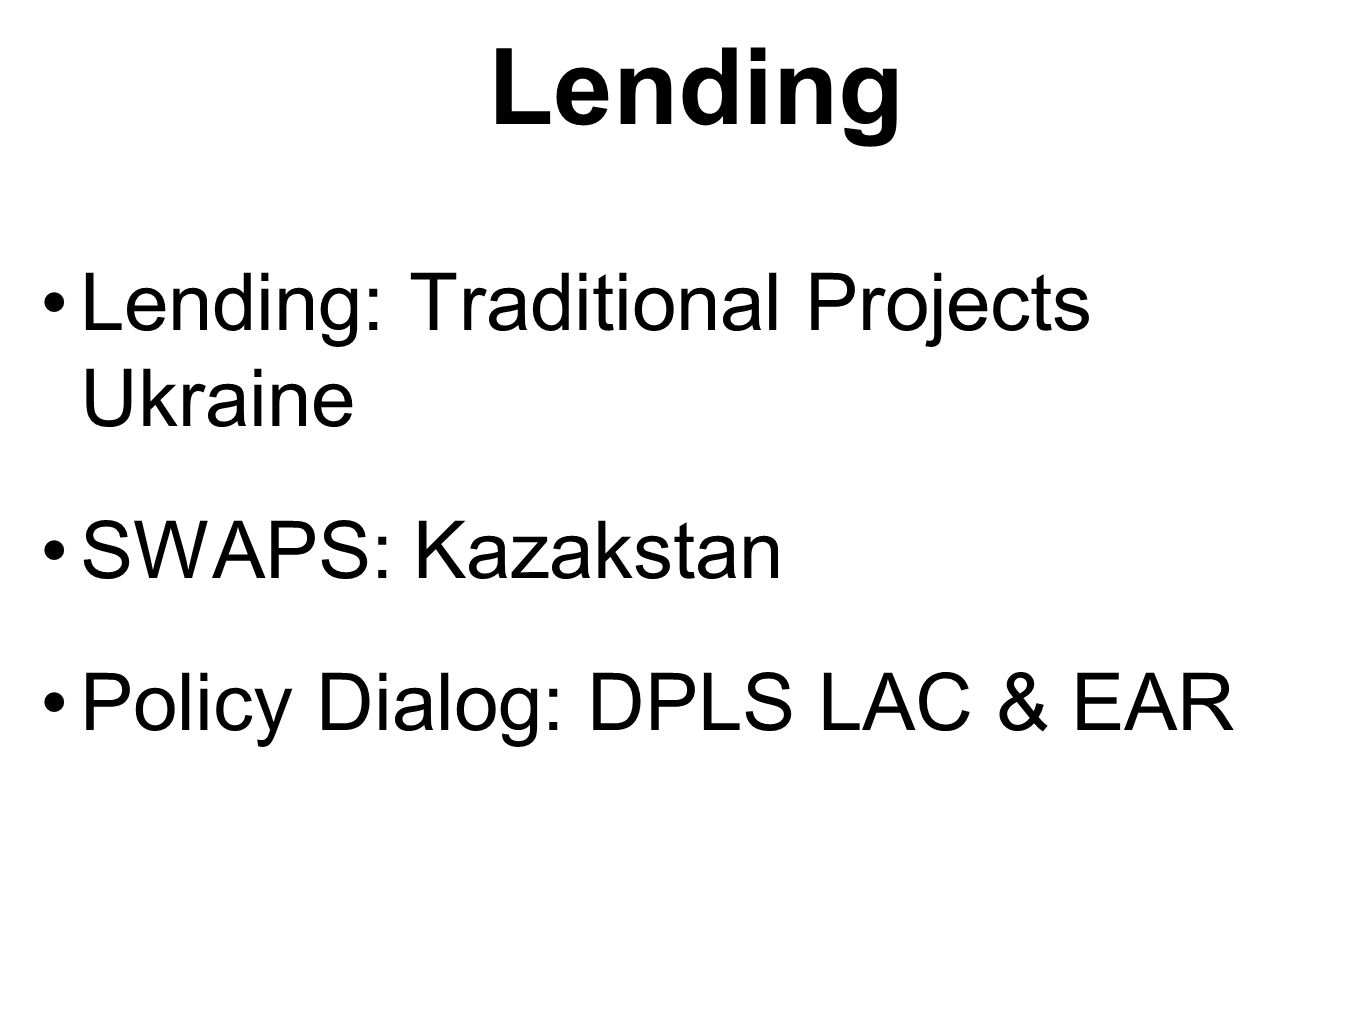 Lending Lending: Traditional Projects Ukraine SWAPS: Kazakstan